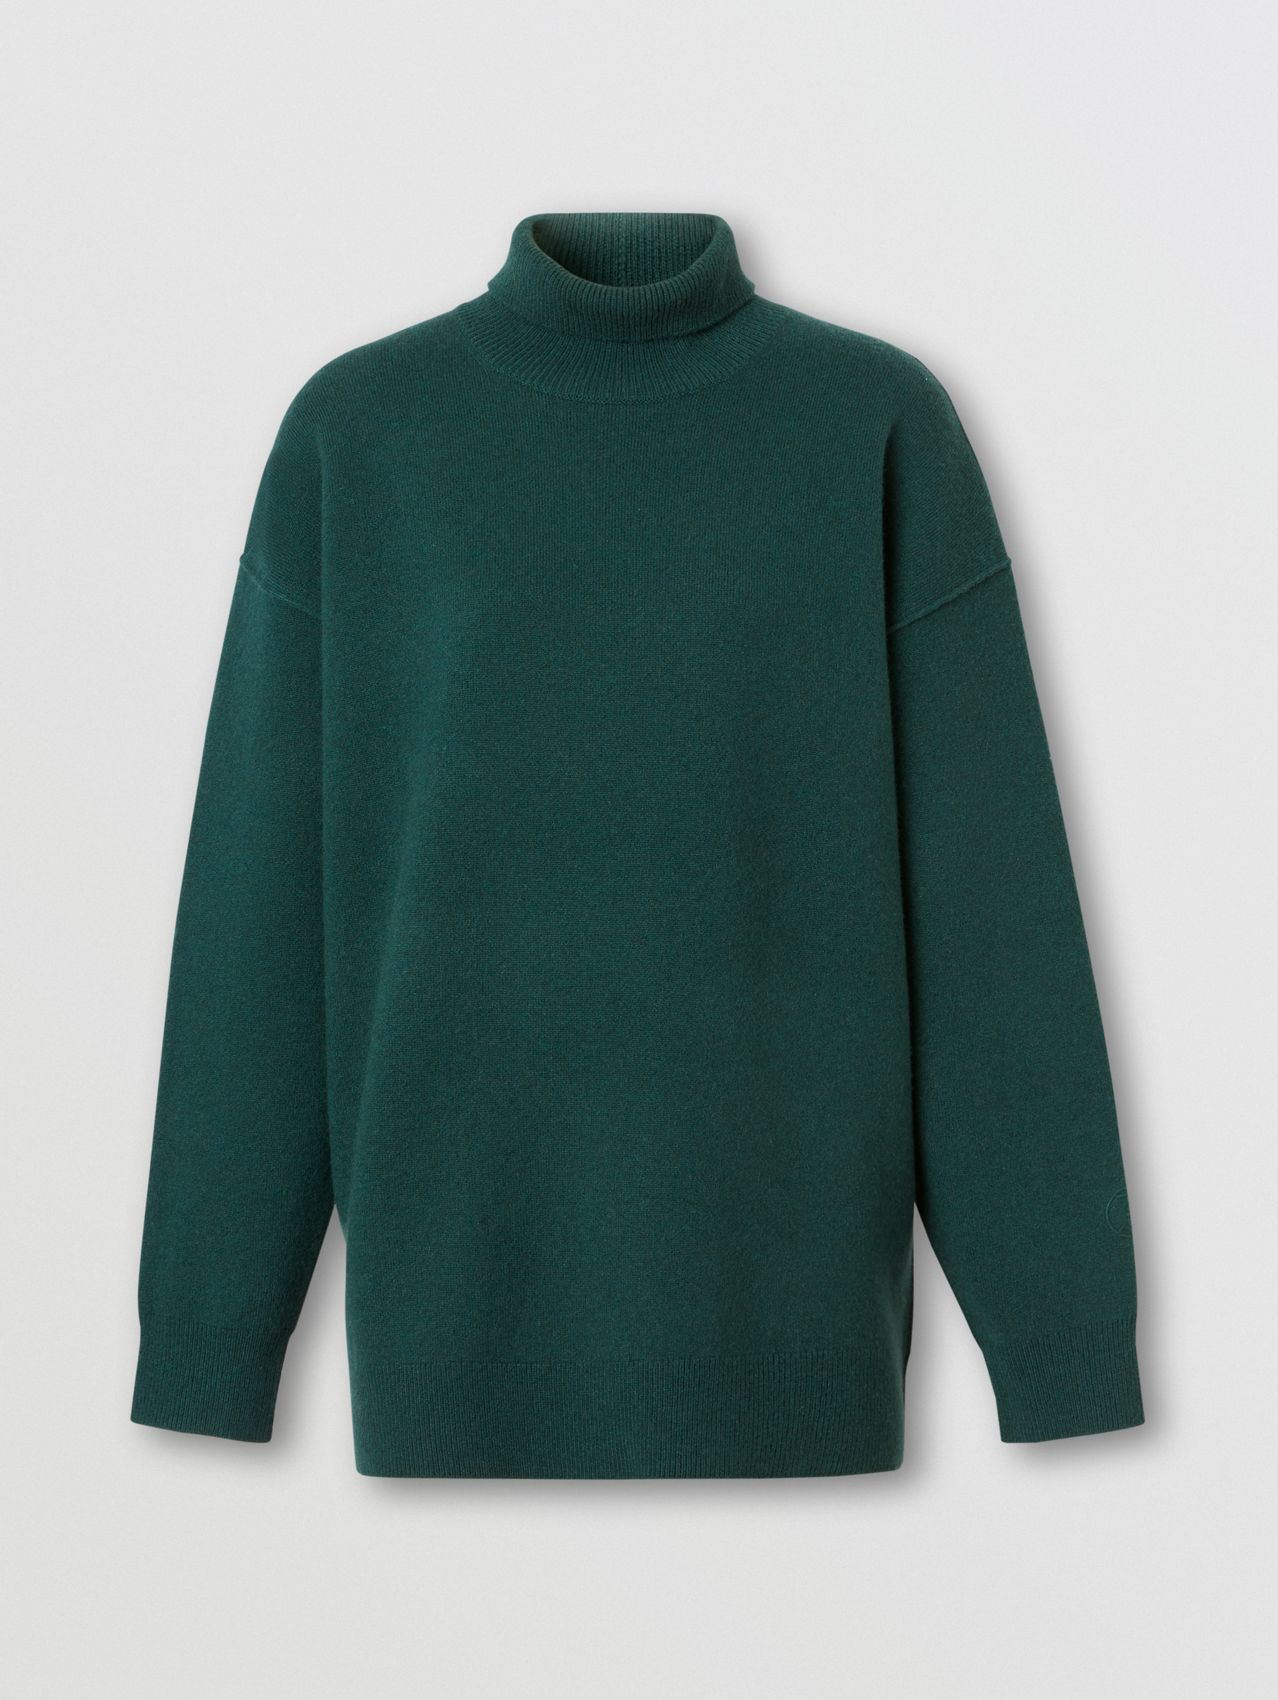 Monogram Motif Cashmere Blend Funnel Neck Sweater in Bottle Green